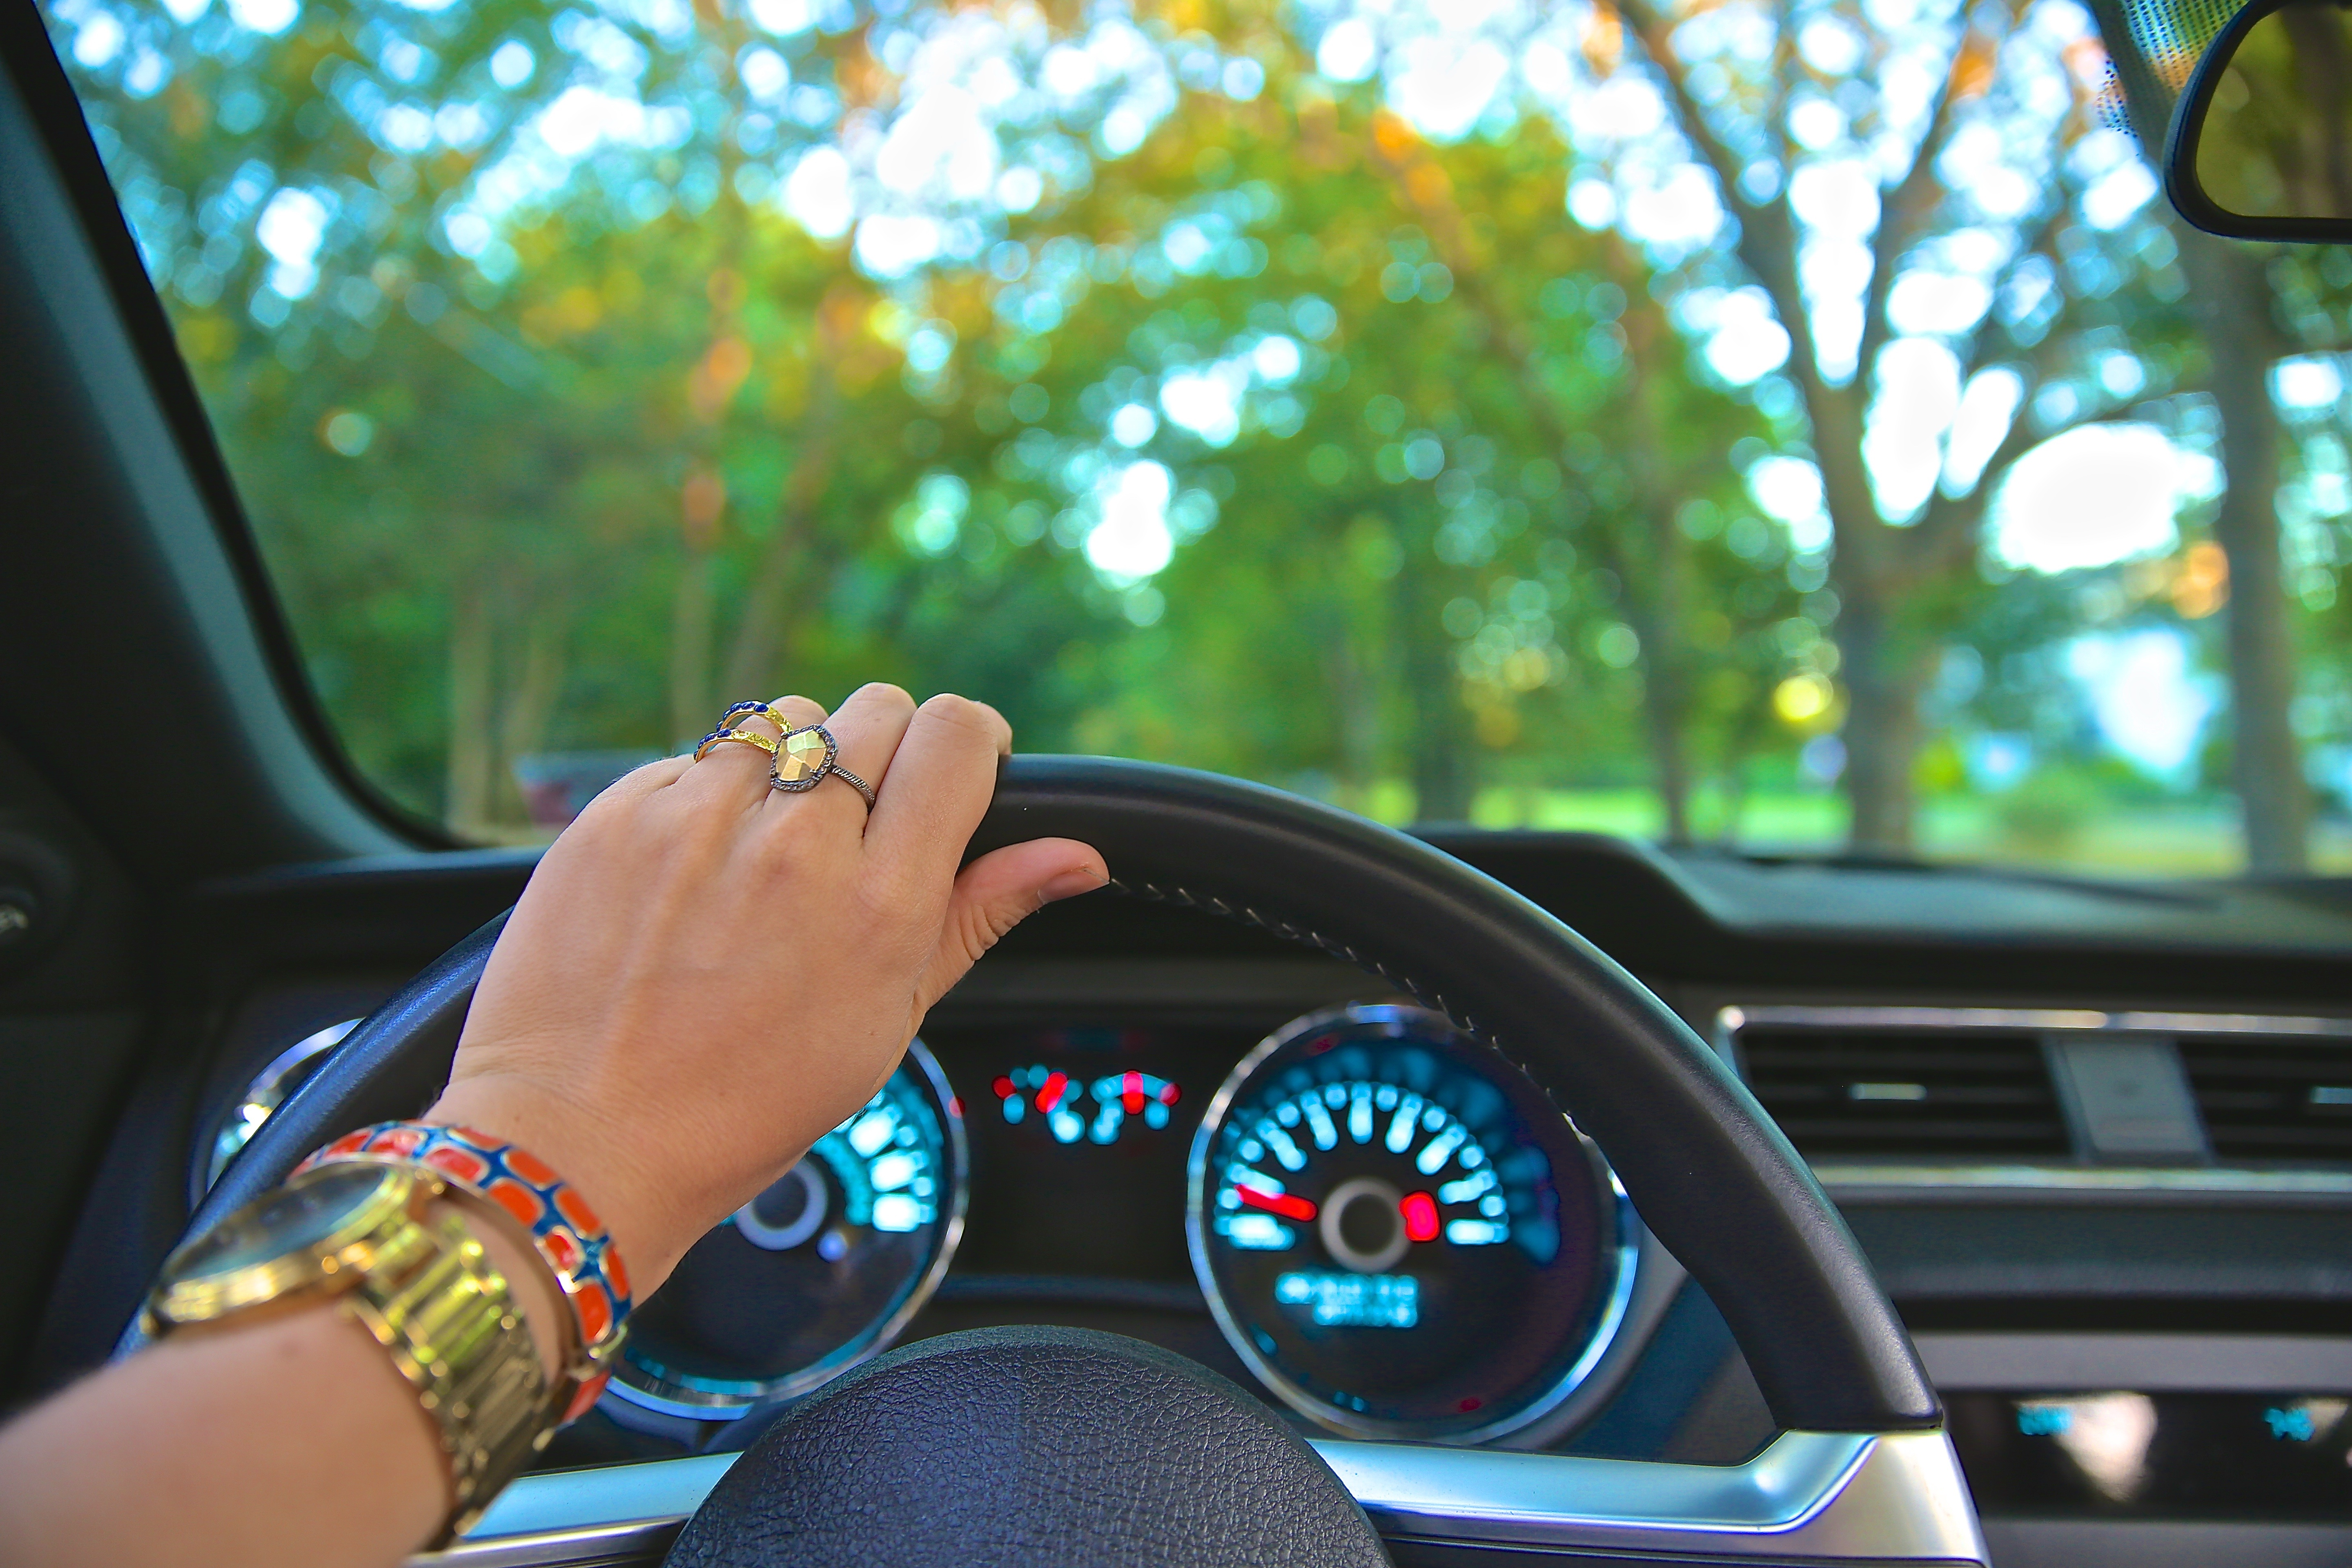 What Every Woman Should Know About Her Car: it is a machine that needs regular maintenance